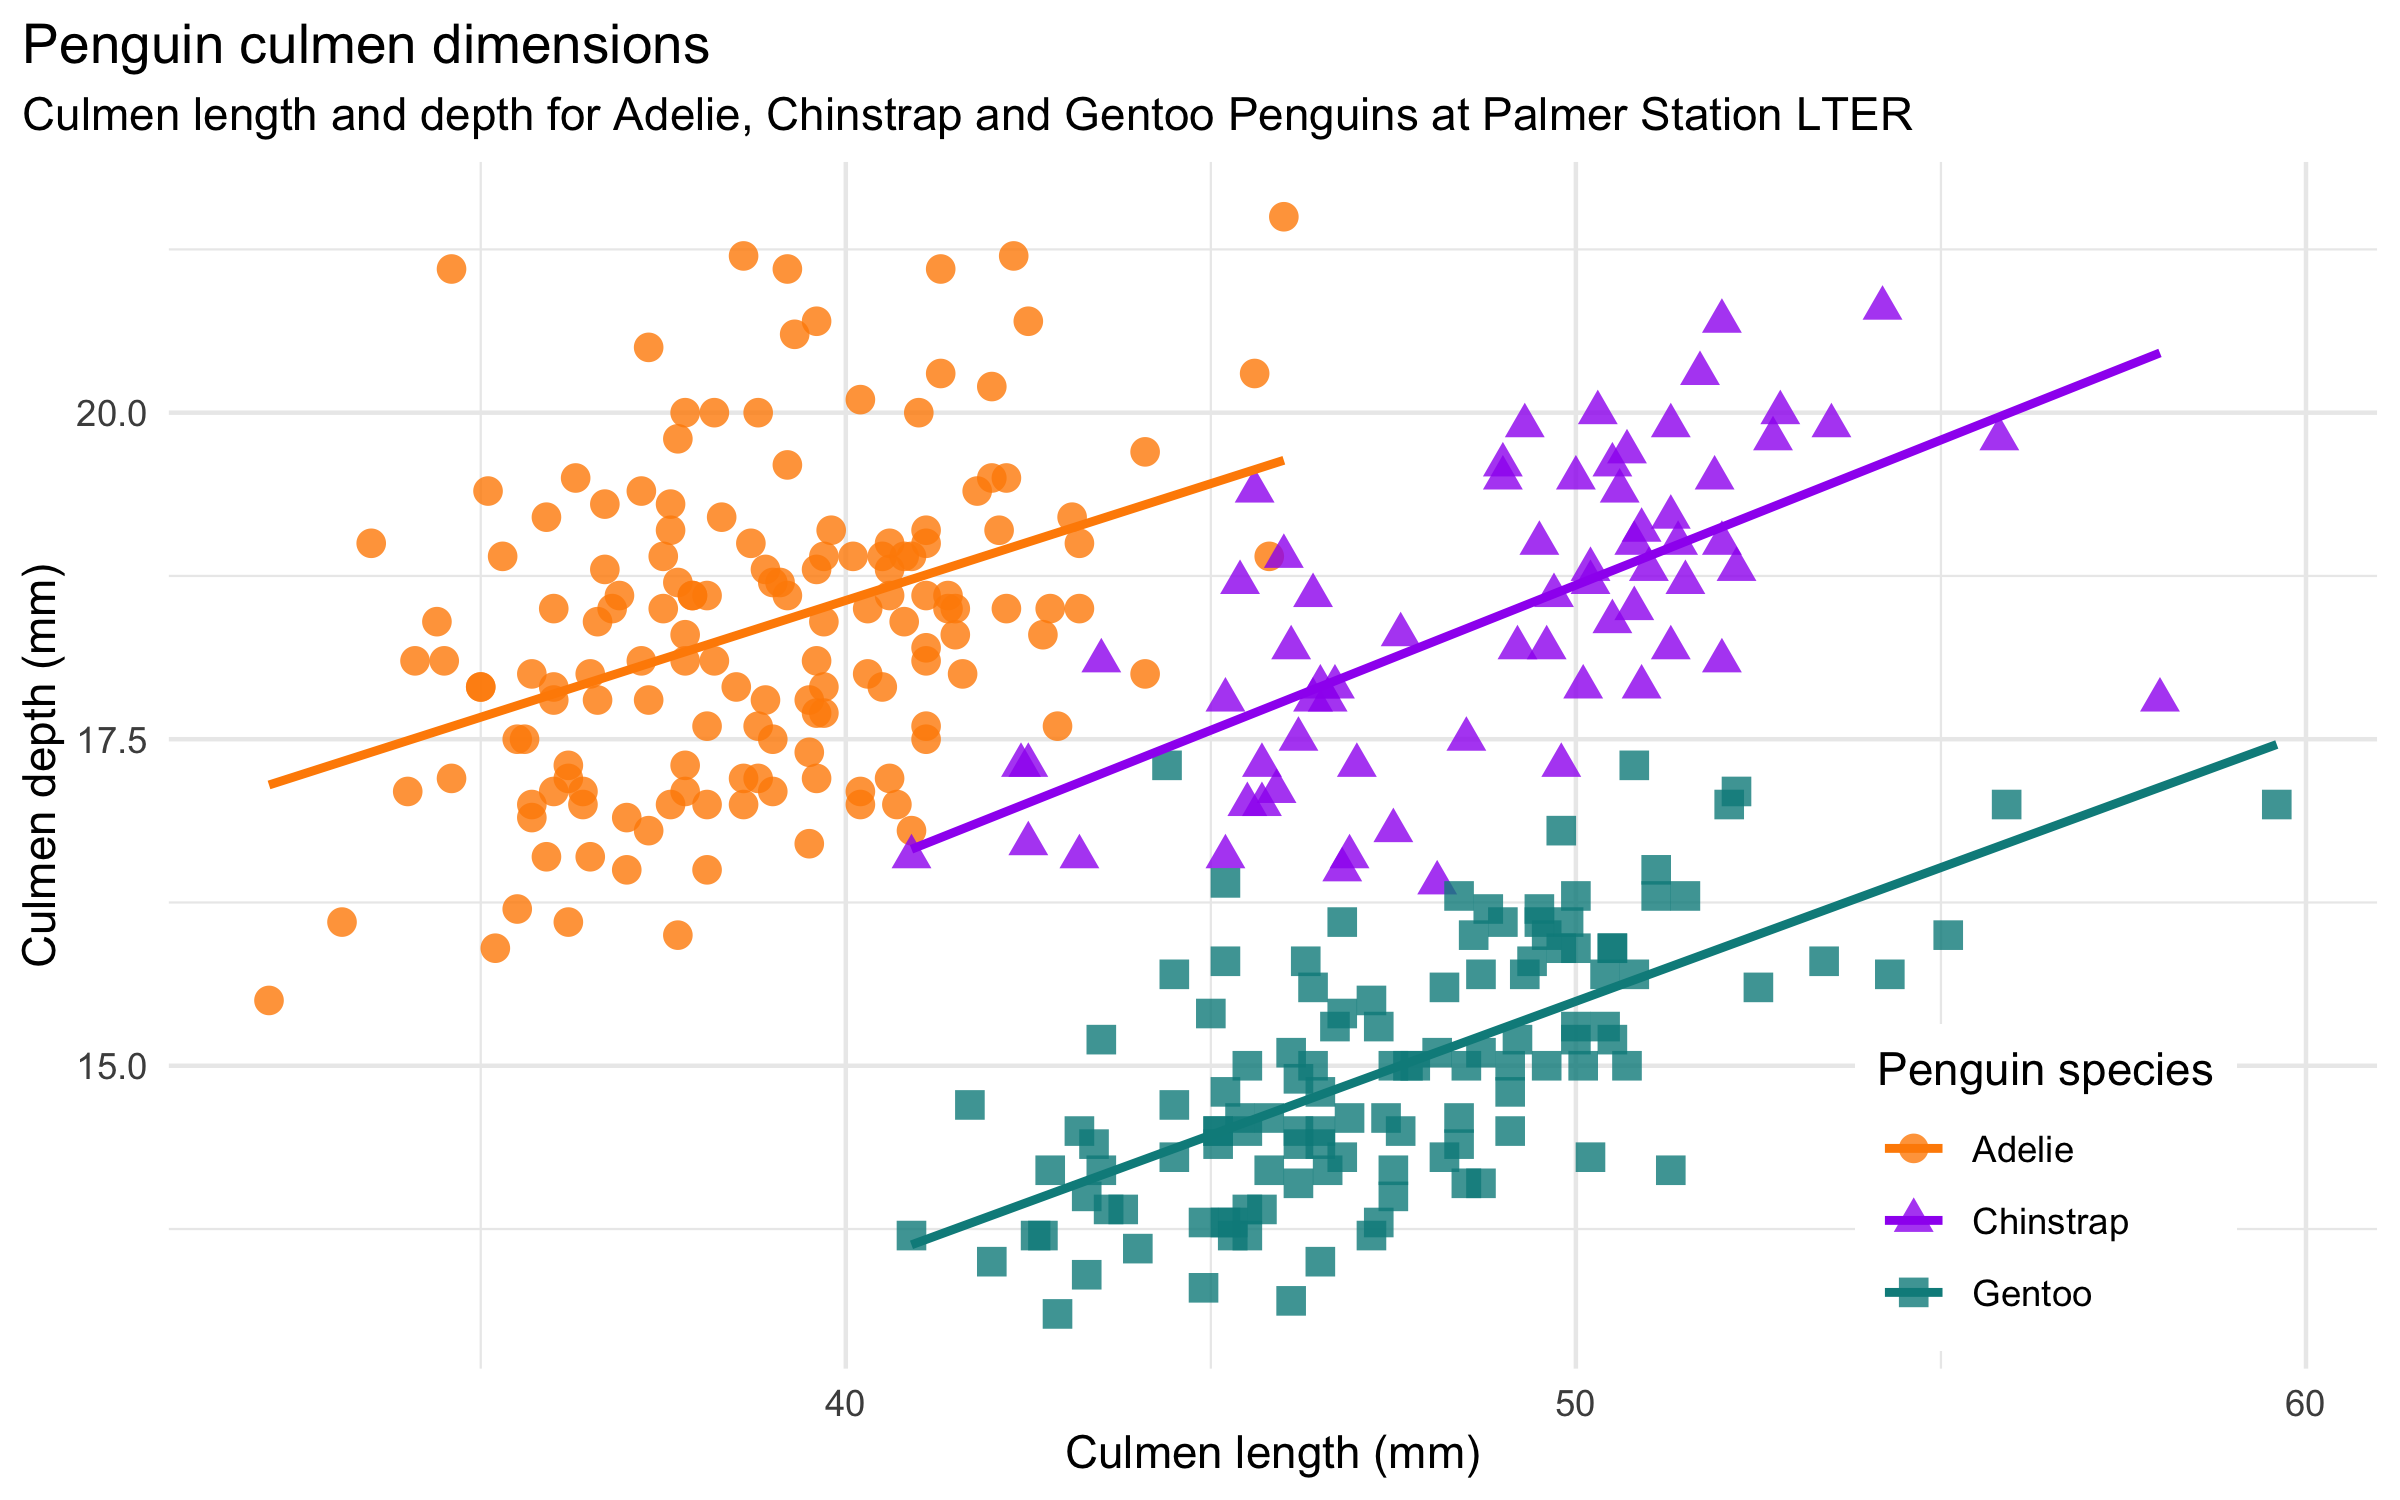 Scatterplot of culmen length and depth clustered by species